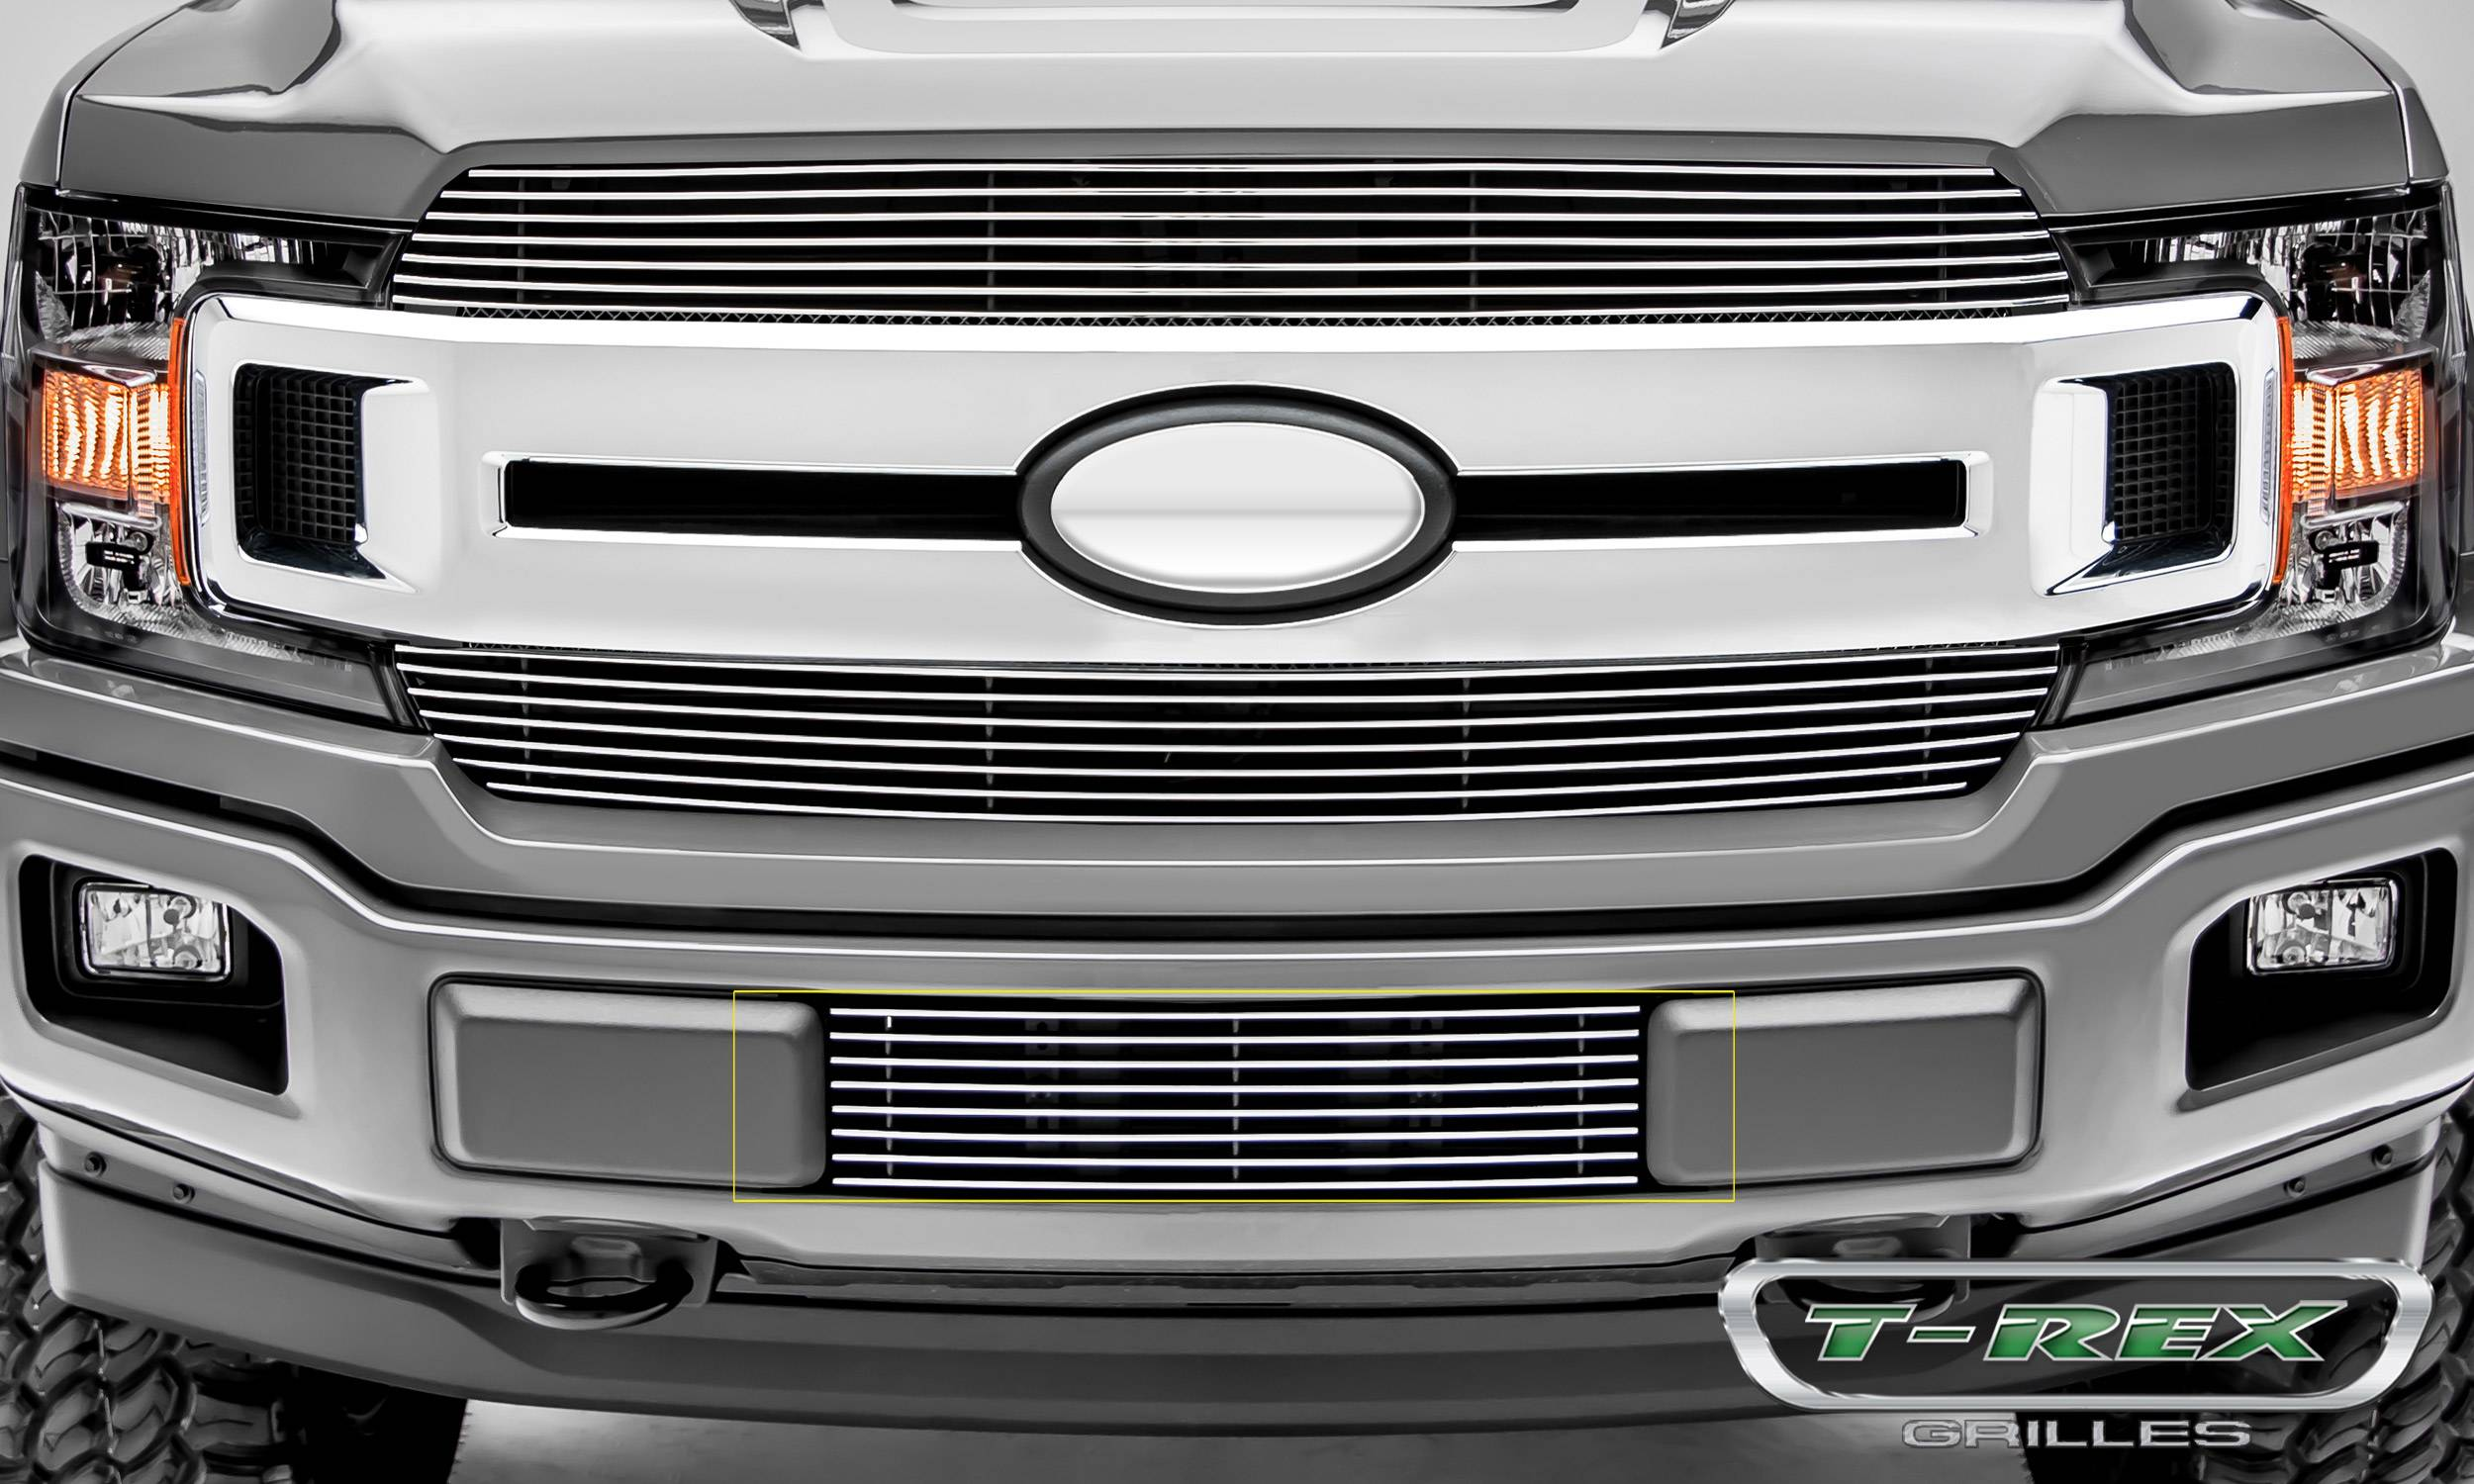 T-REX Grilles - T-REX Ford F-150 - Billet Series - Bumper Grille Overlay with Polished Aluminum Finish - Pt # 25571